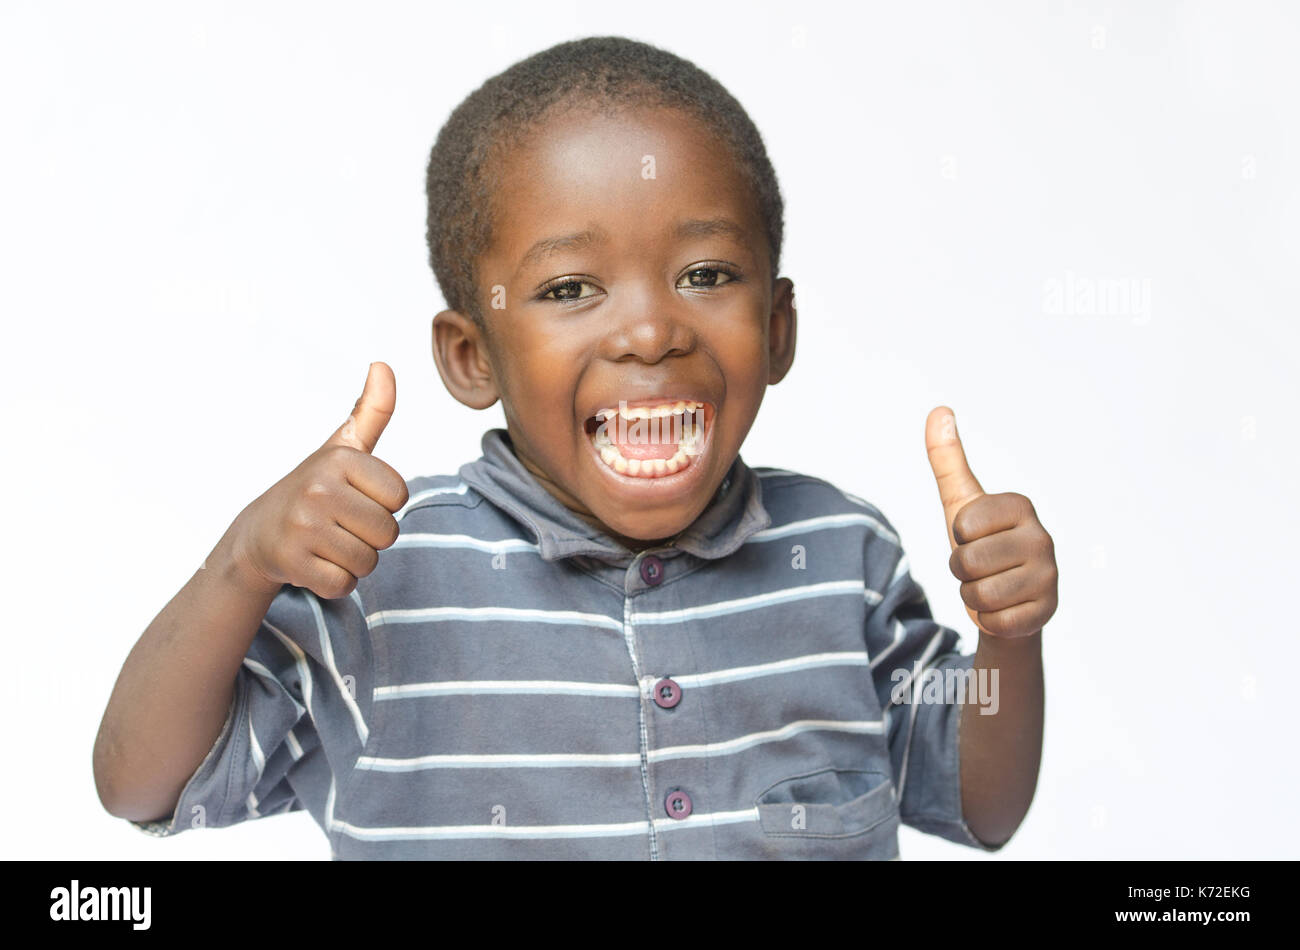 Very happy African black boy making thumbs up sign with hands laughing happily (African ethnicity black boy isolated on white) - Stock Image